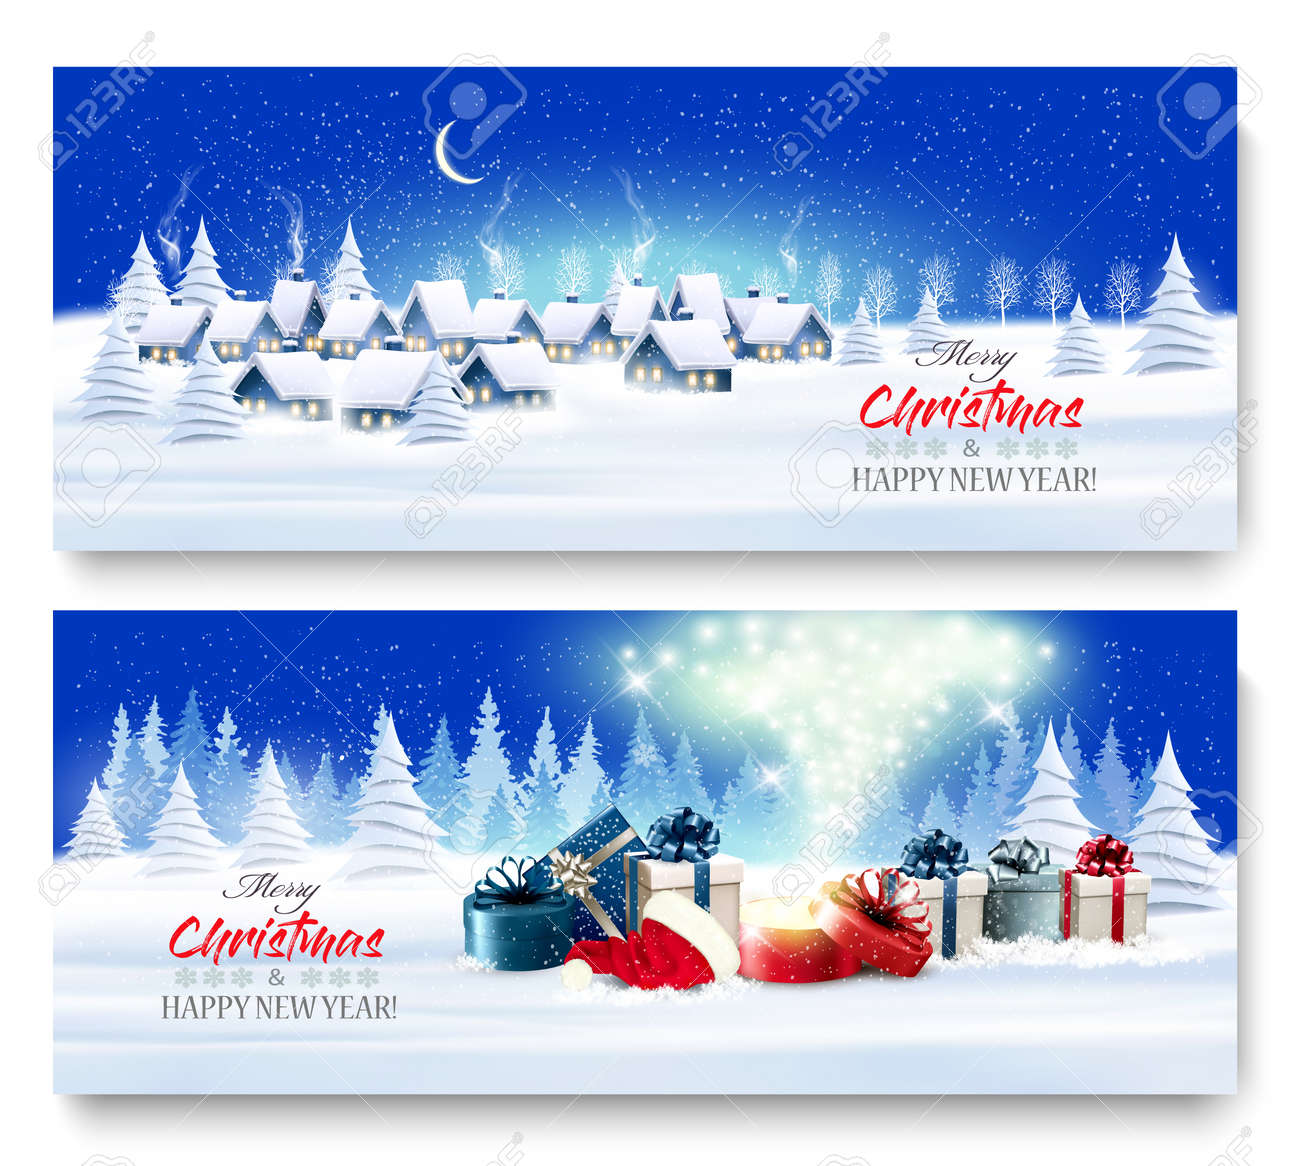 Holiday Christmas and New Year Banners with a Village Landscape and presents with magic box. Vector. - 158478315